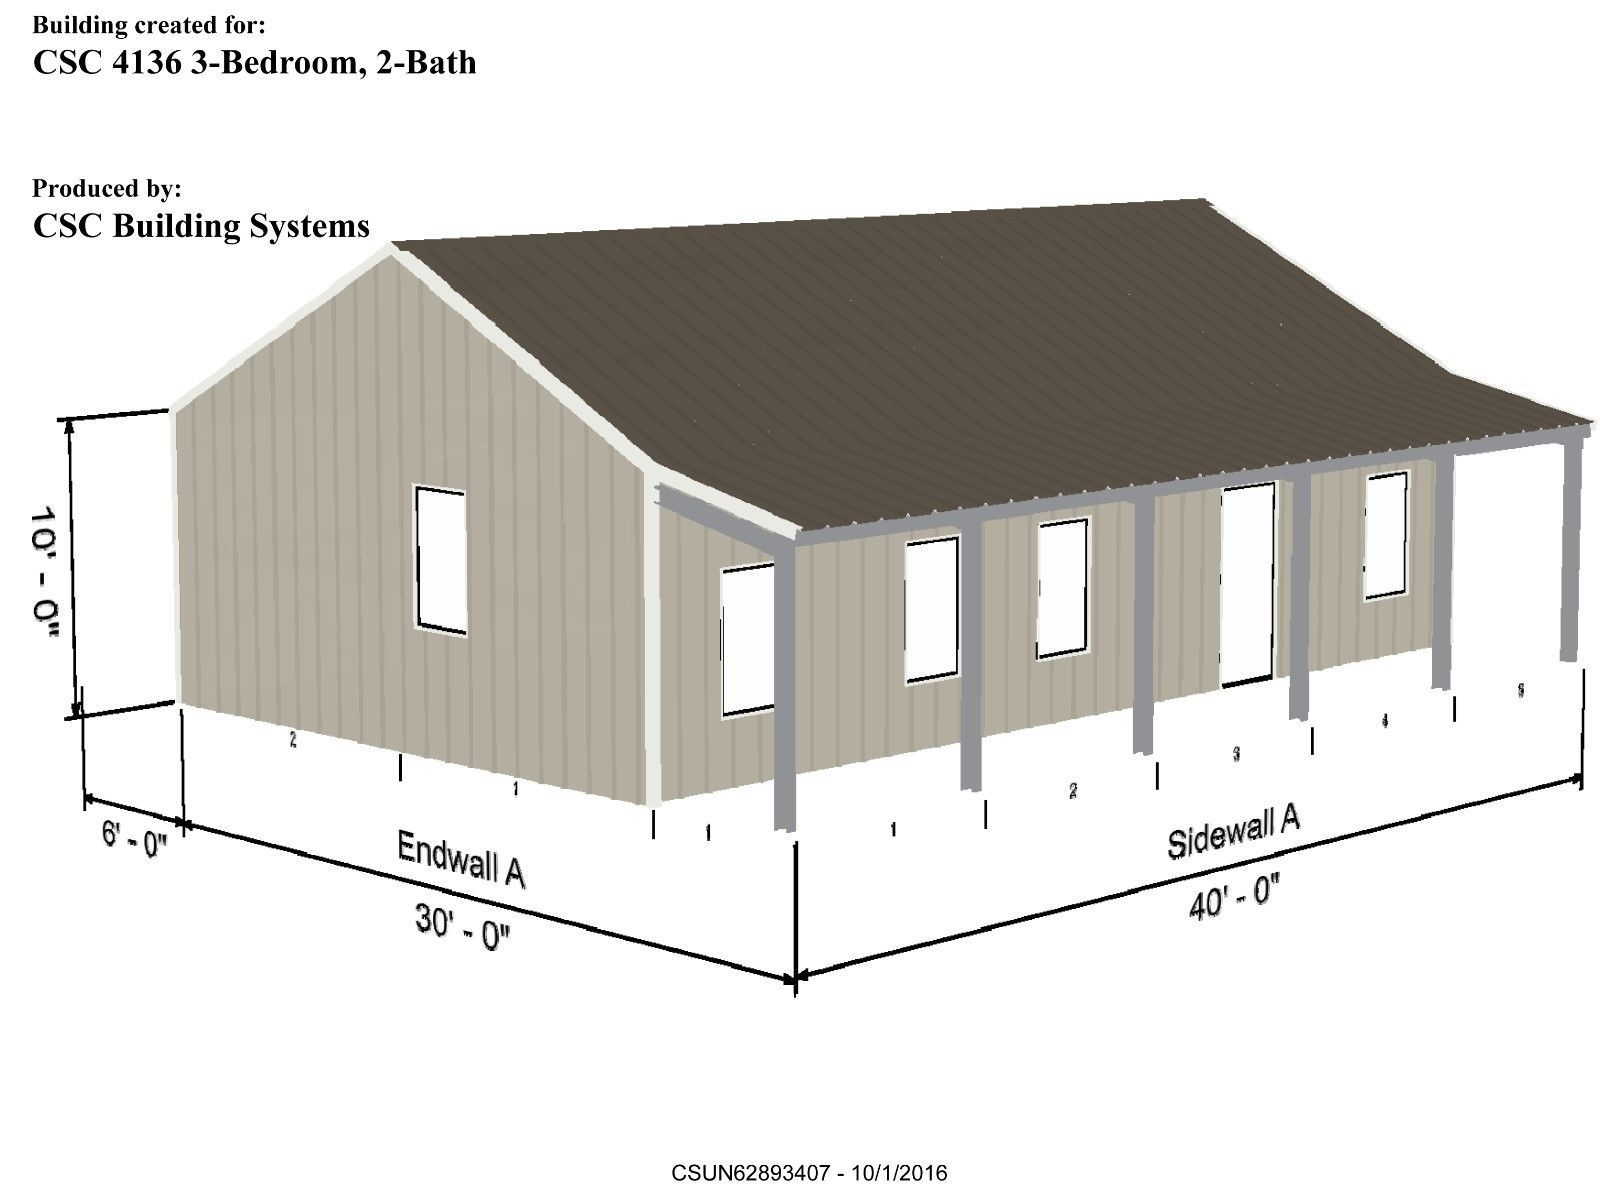 Metal Frame House Kit 960 Sq Ft With Two Covered Porches Engineered Foundation And Building Plans Includ Metal Building Home Kits Steel Home Kits Steel House